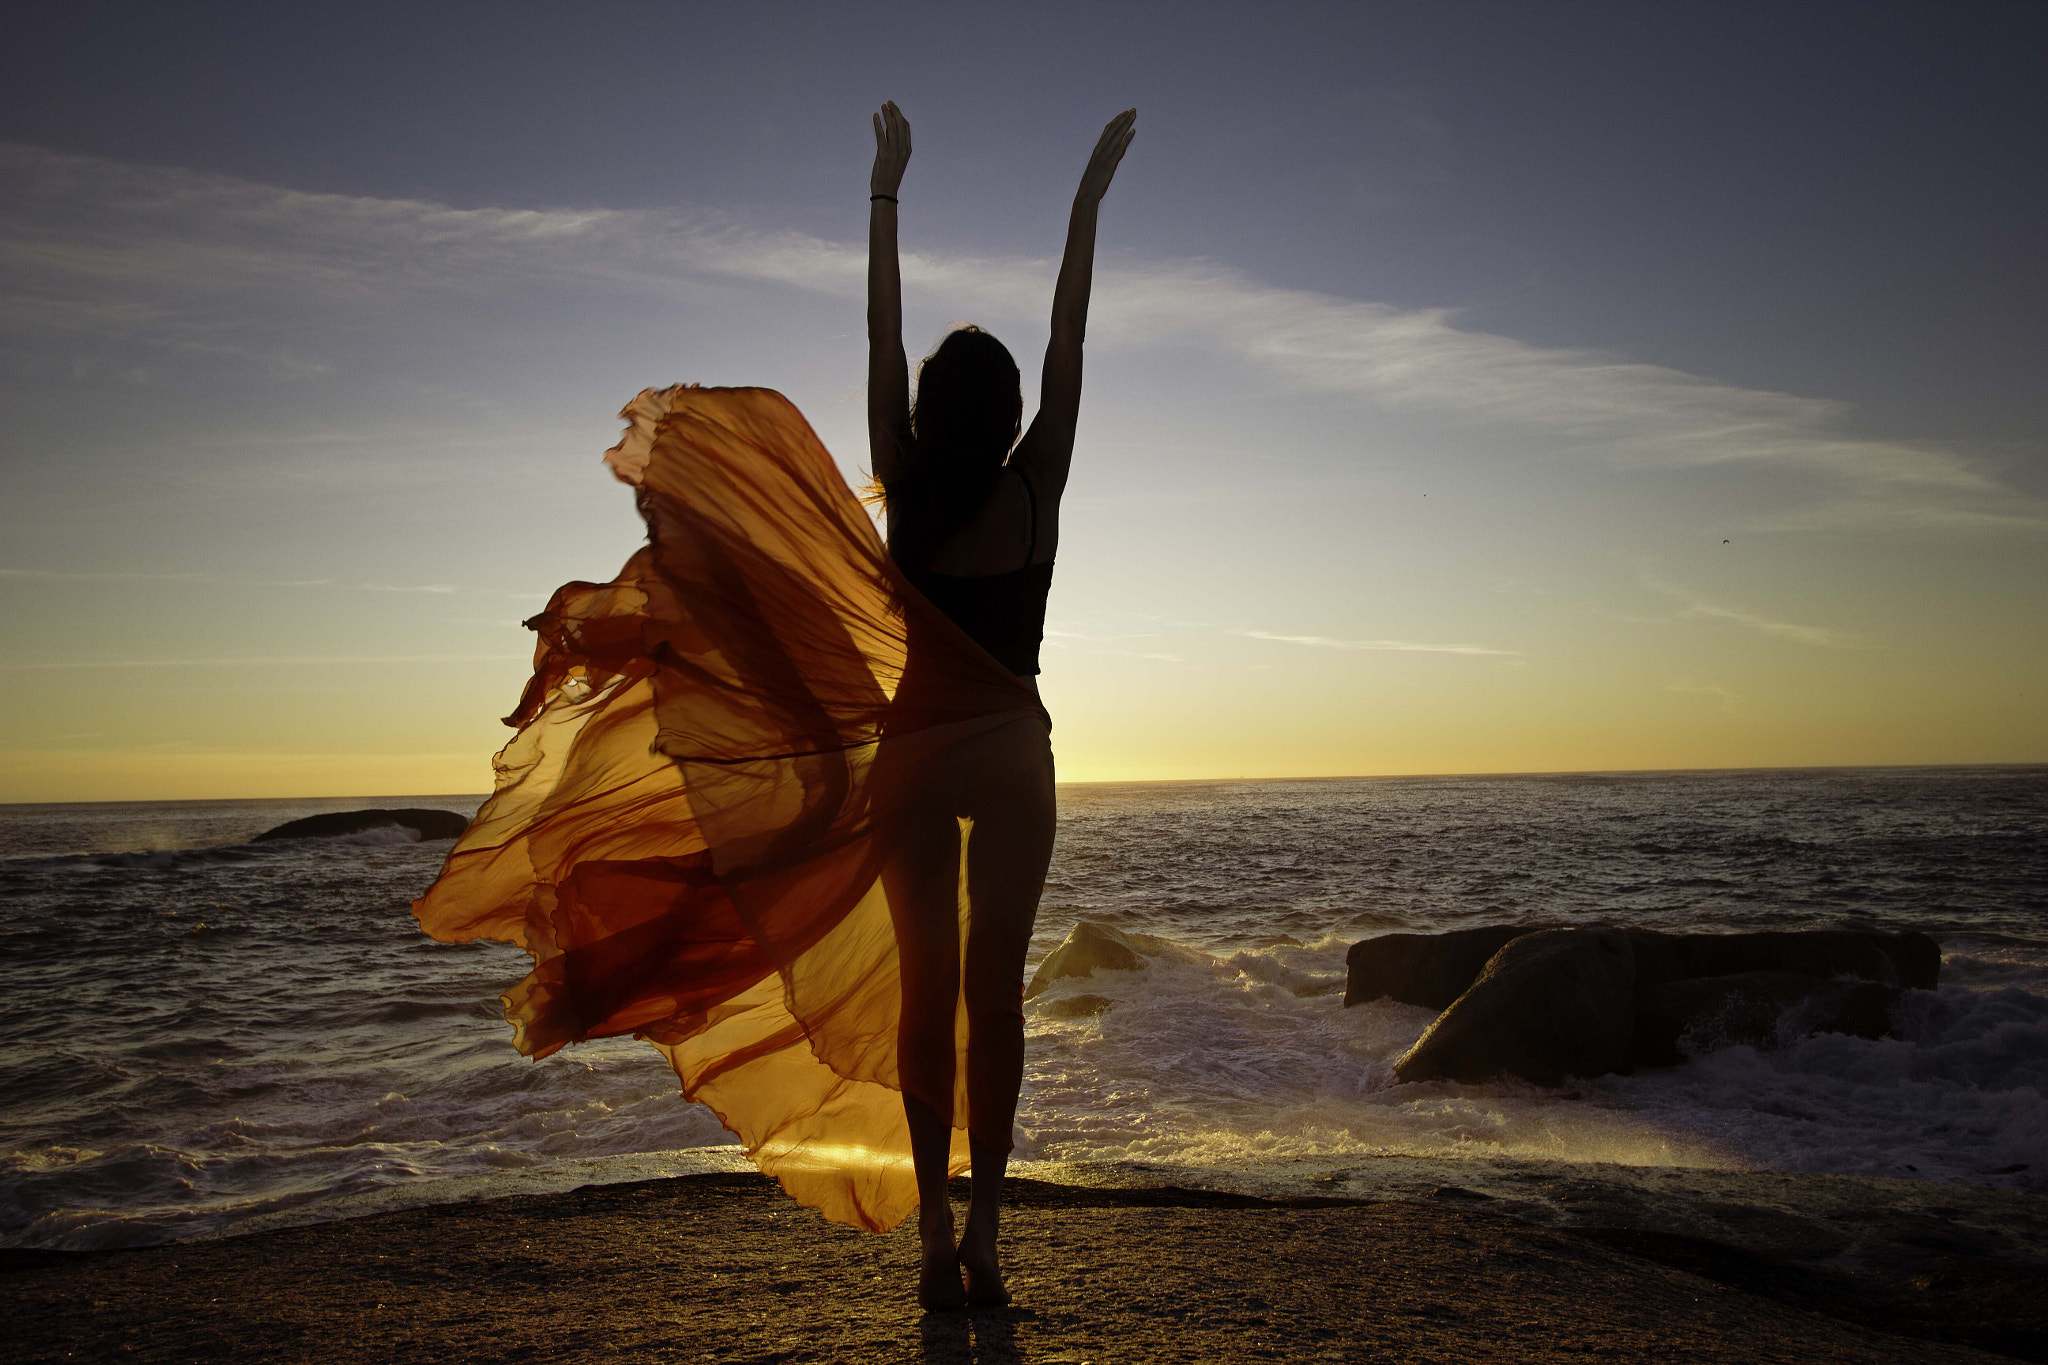 Photograph Dance with sunset by Gabriela Slegrova Solms on 500px